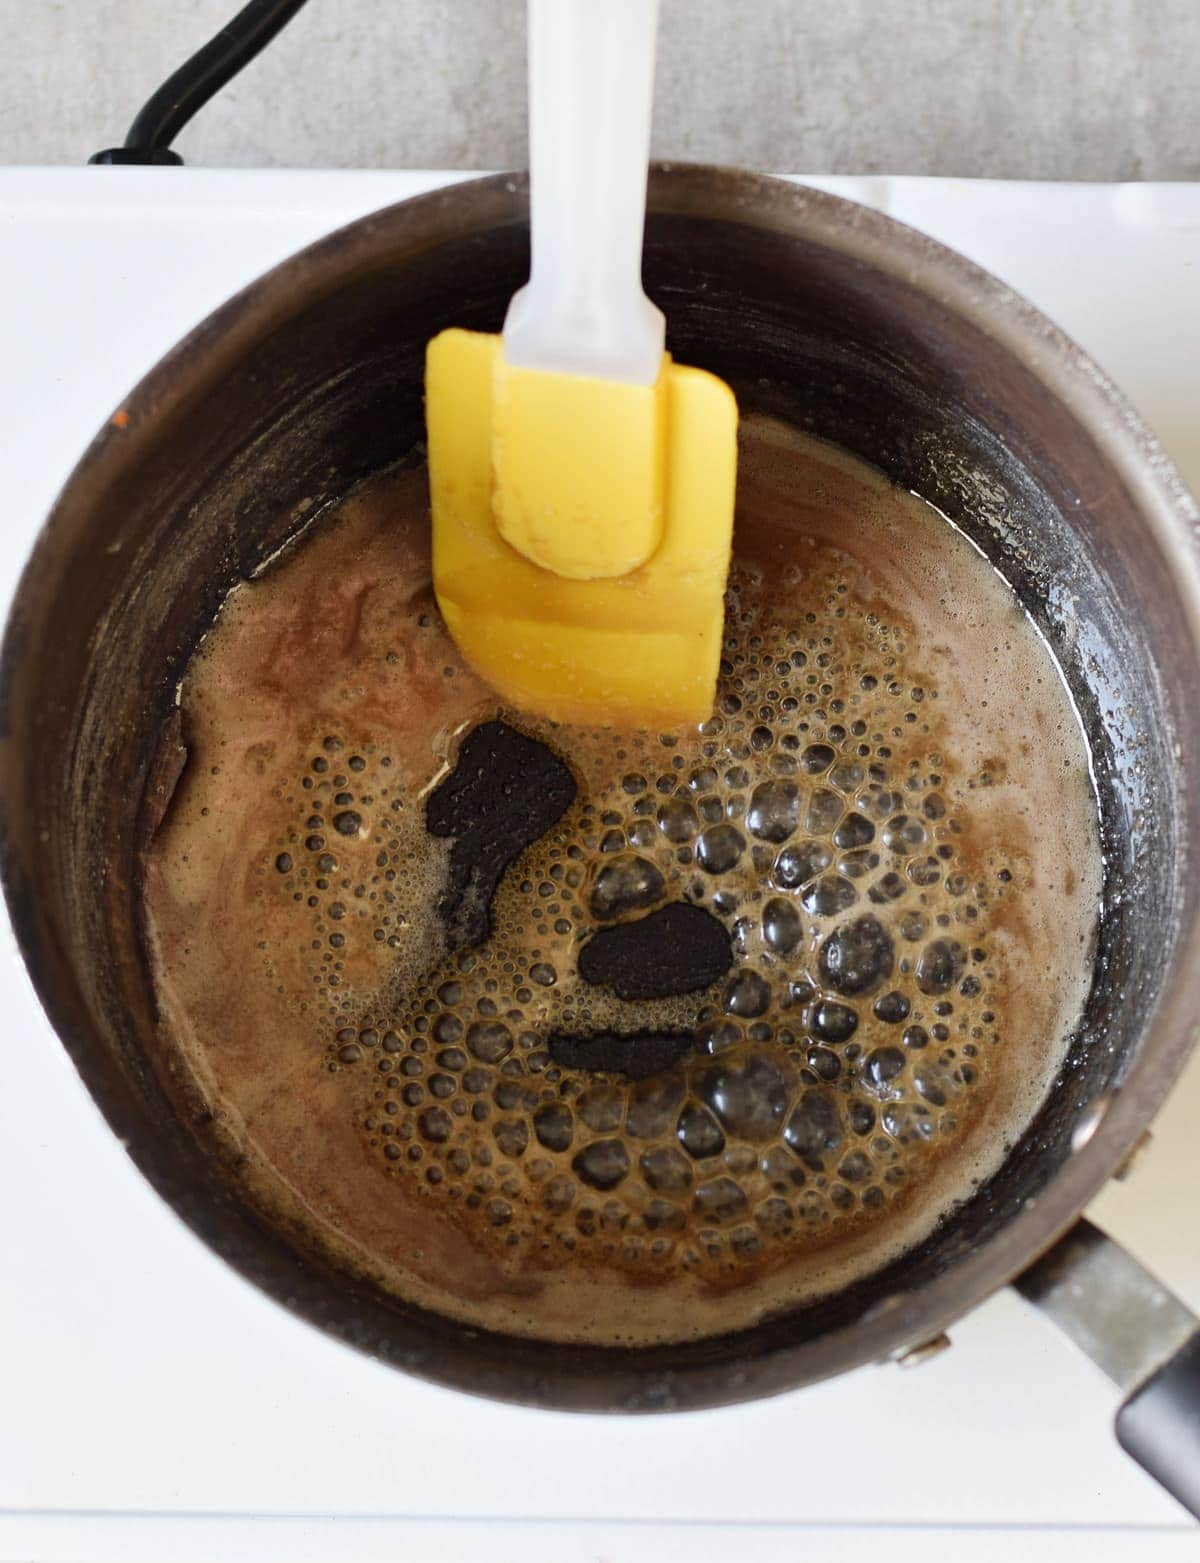 cooking caramel in a black saucepan with a yellow spatula